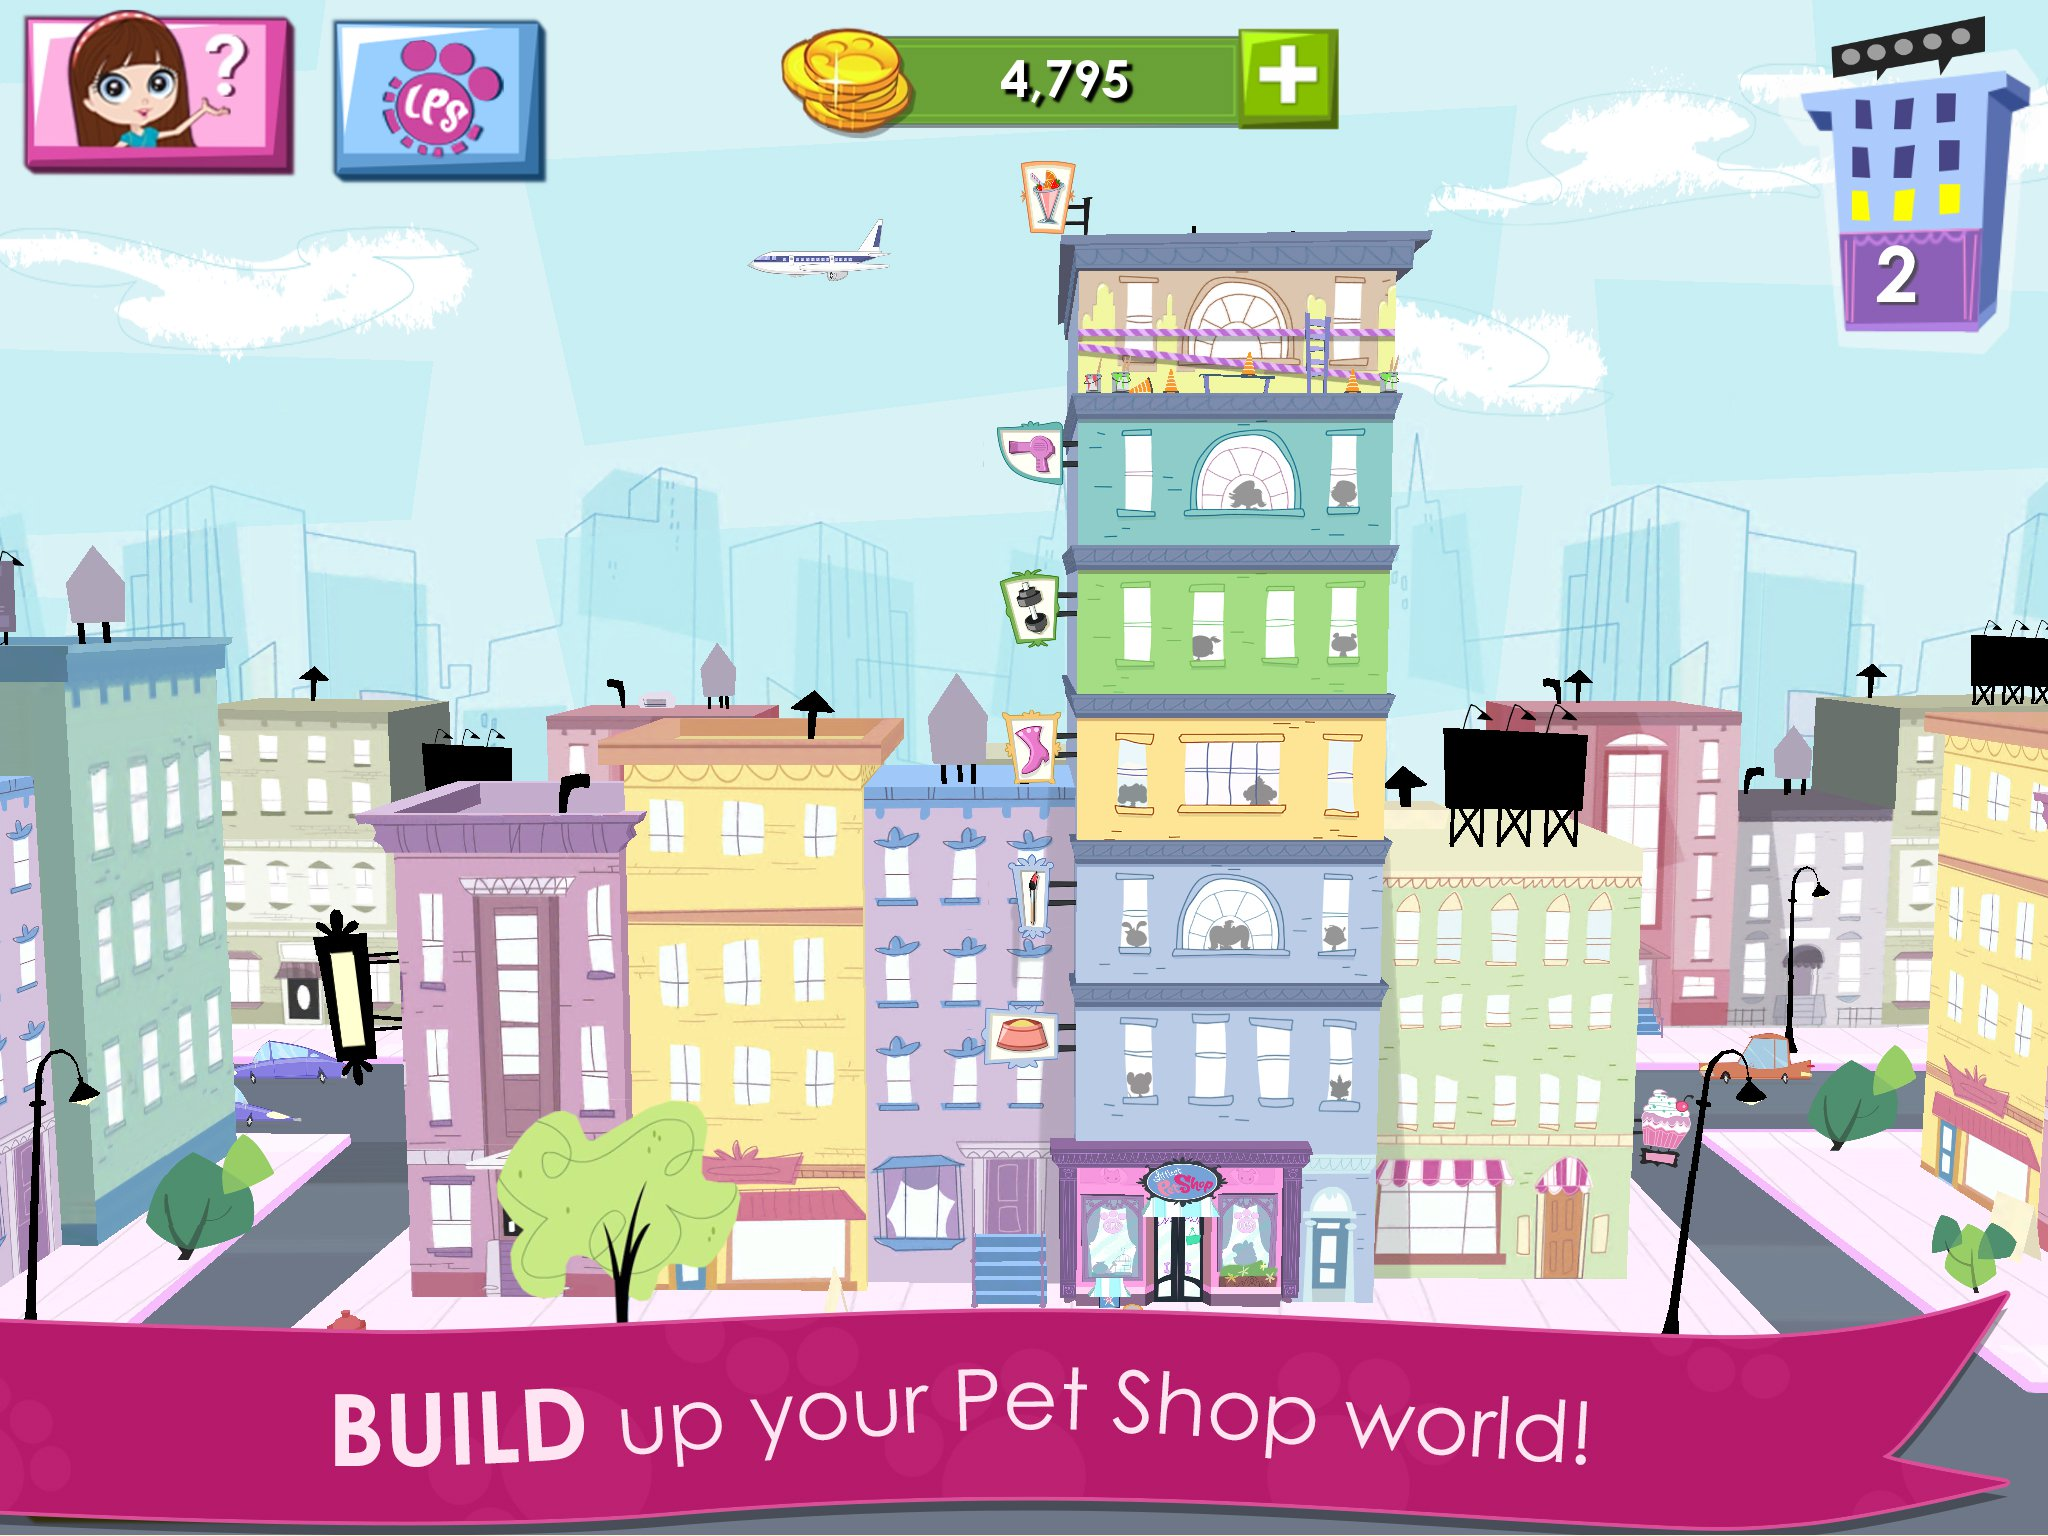 Littlest Pet Shop Apps - Littlest Pet Shop Your World